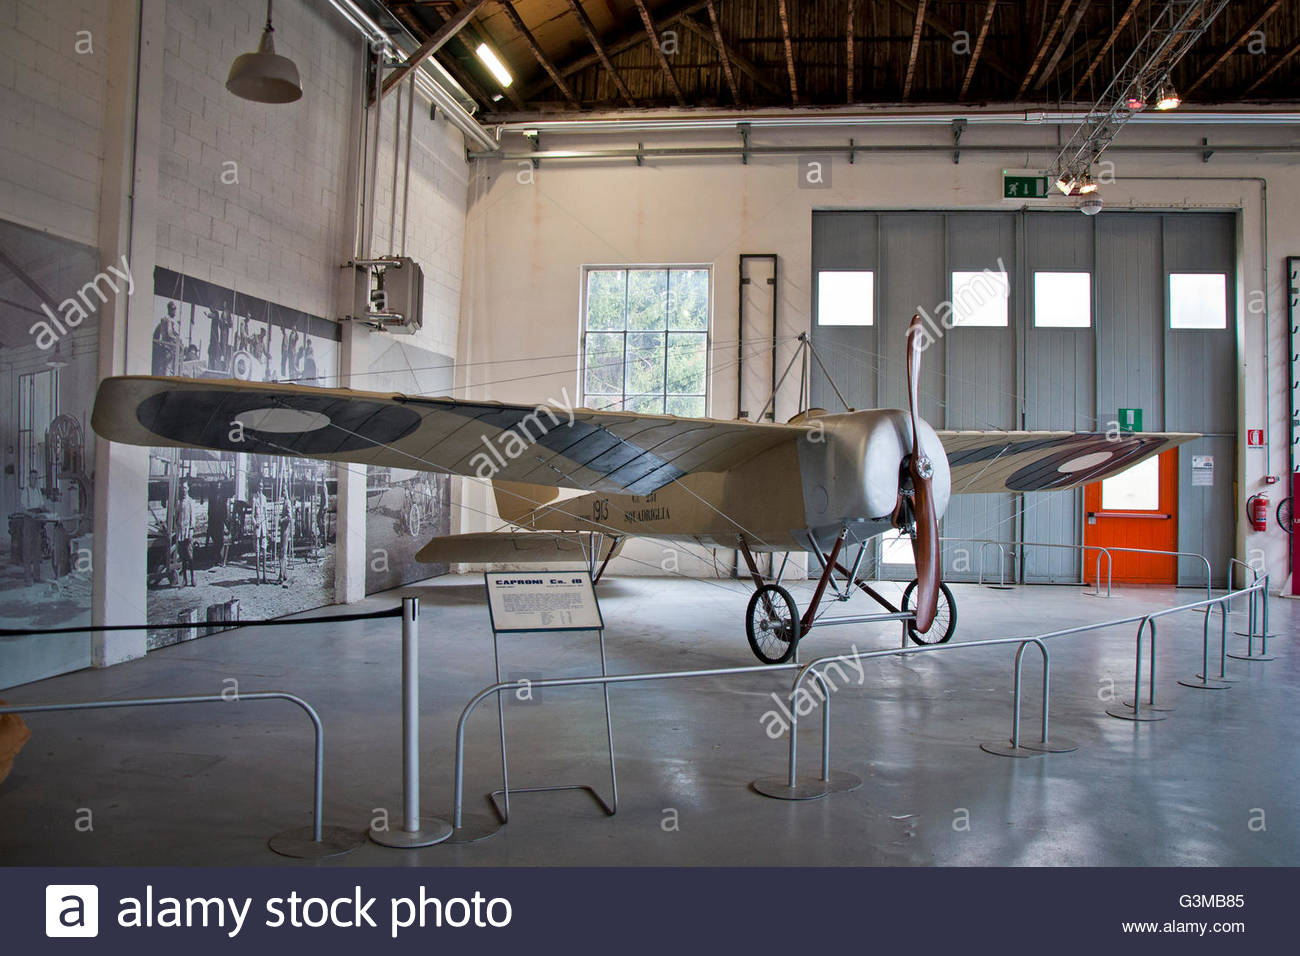 two-seater observation CA.18 caproni,volandia,park and museum of flight,somma lombardo,italy - Stock Image